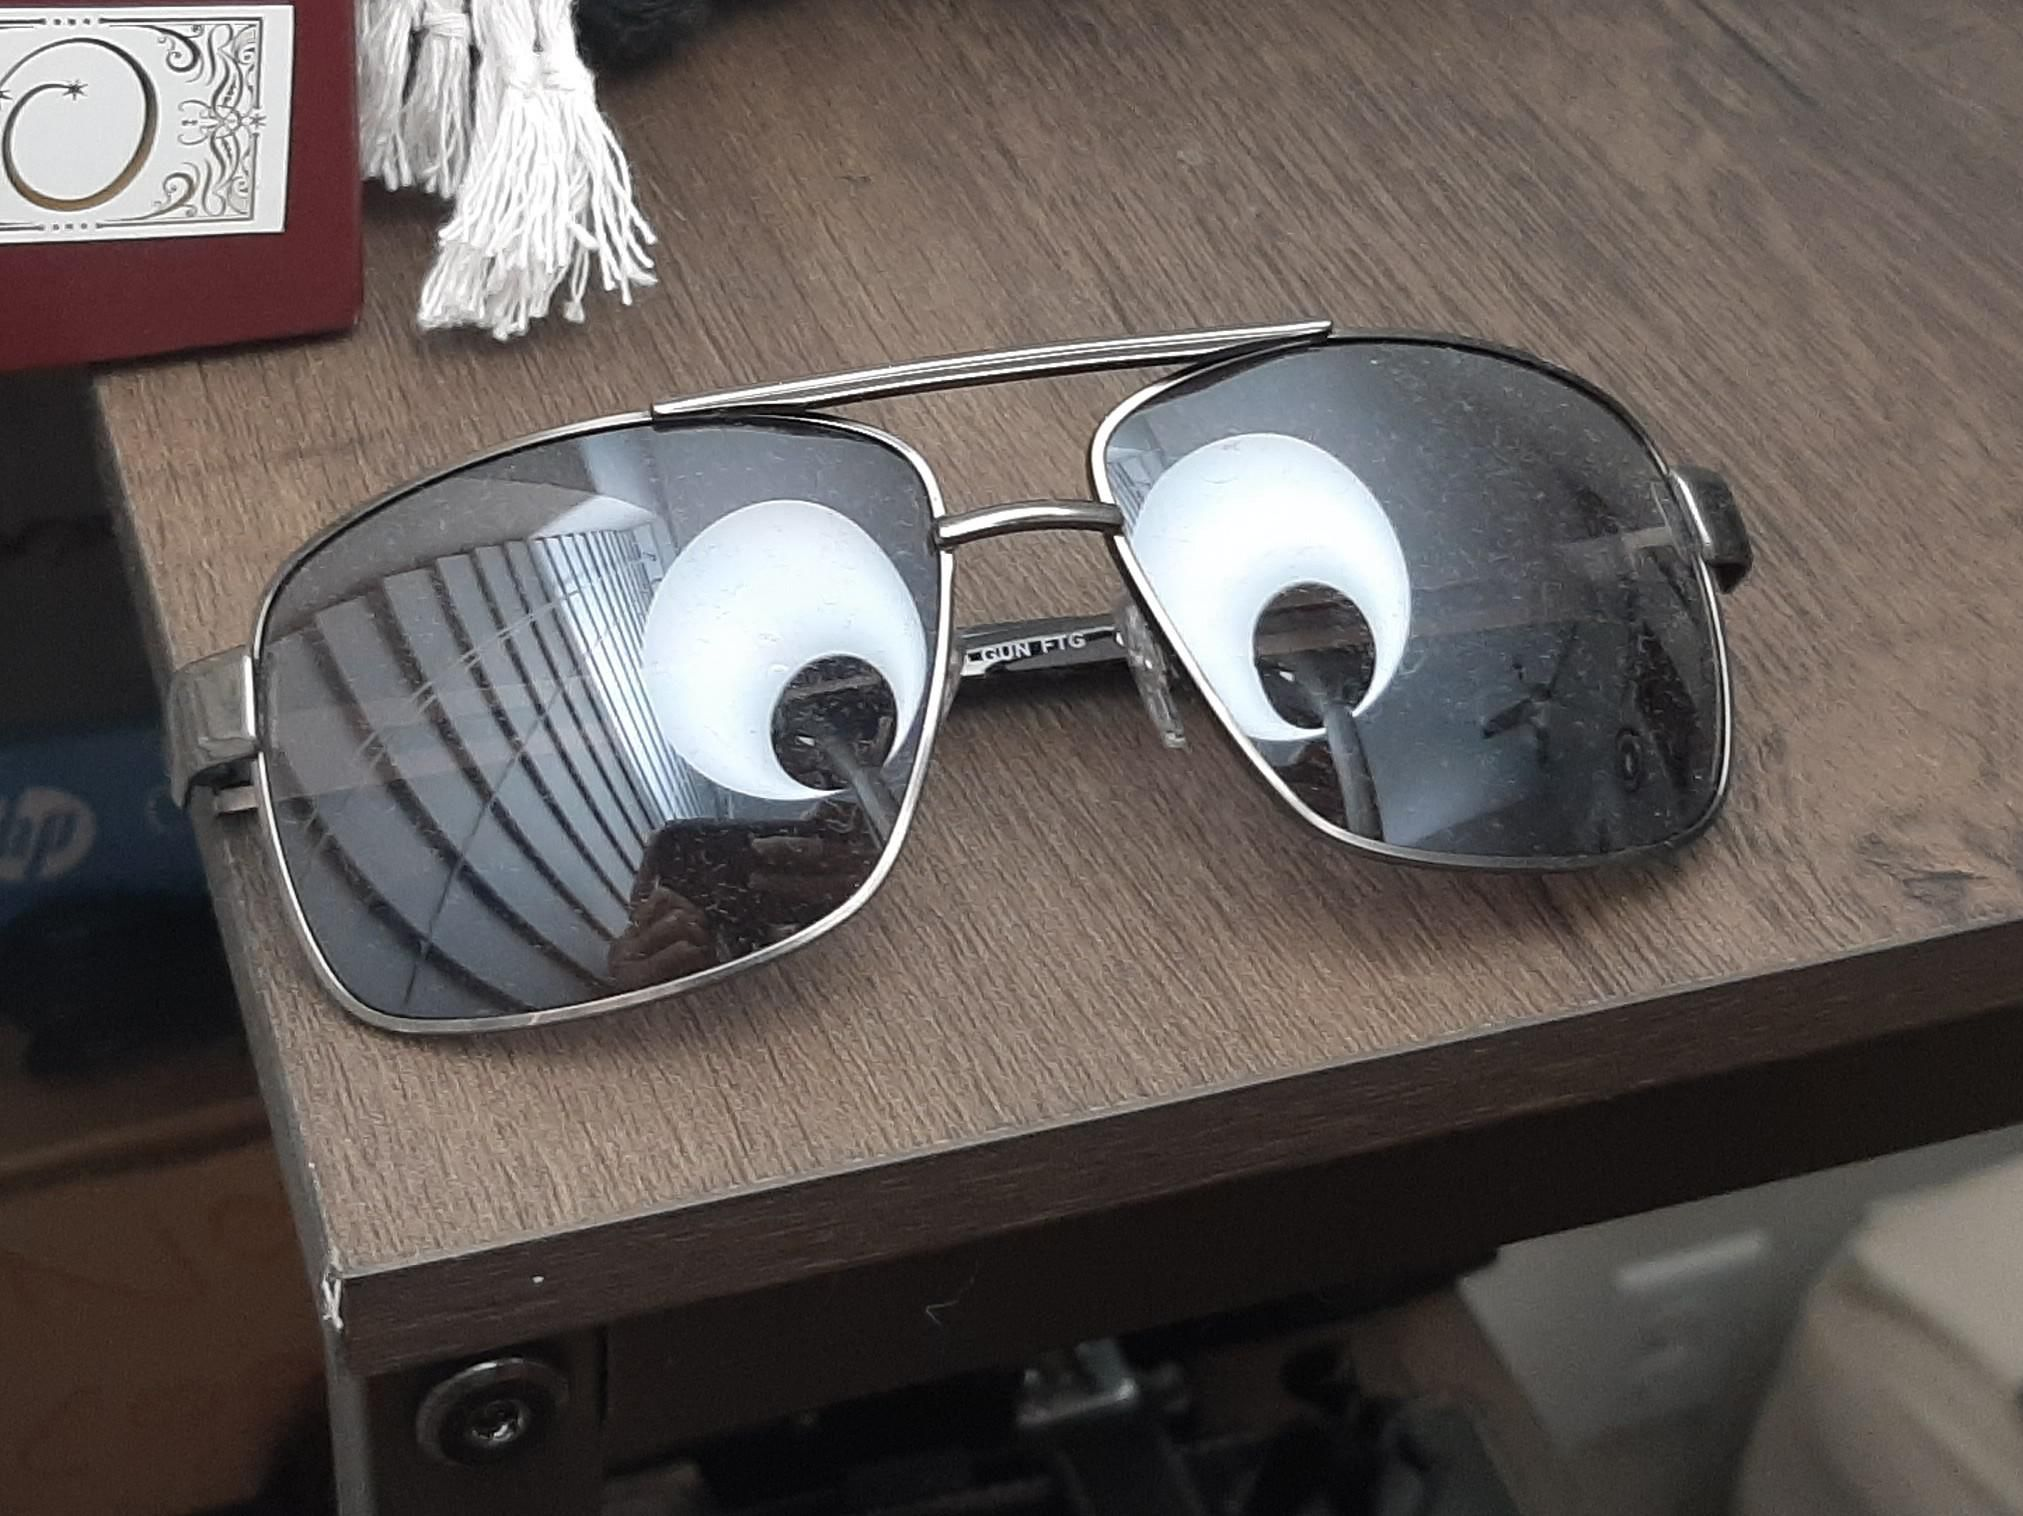 The lamp looks like googly eyes on my shades!